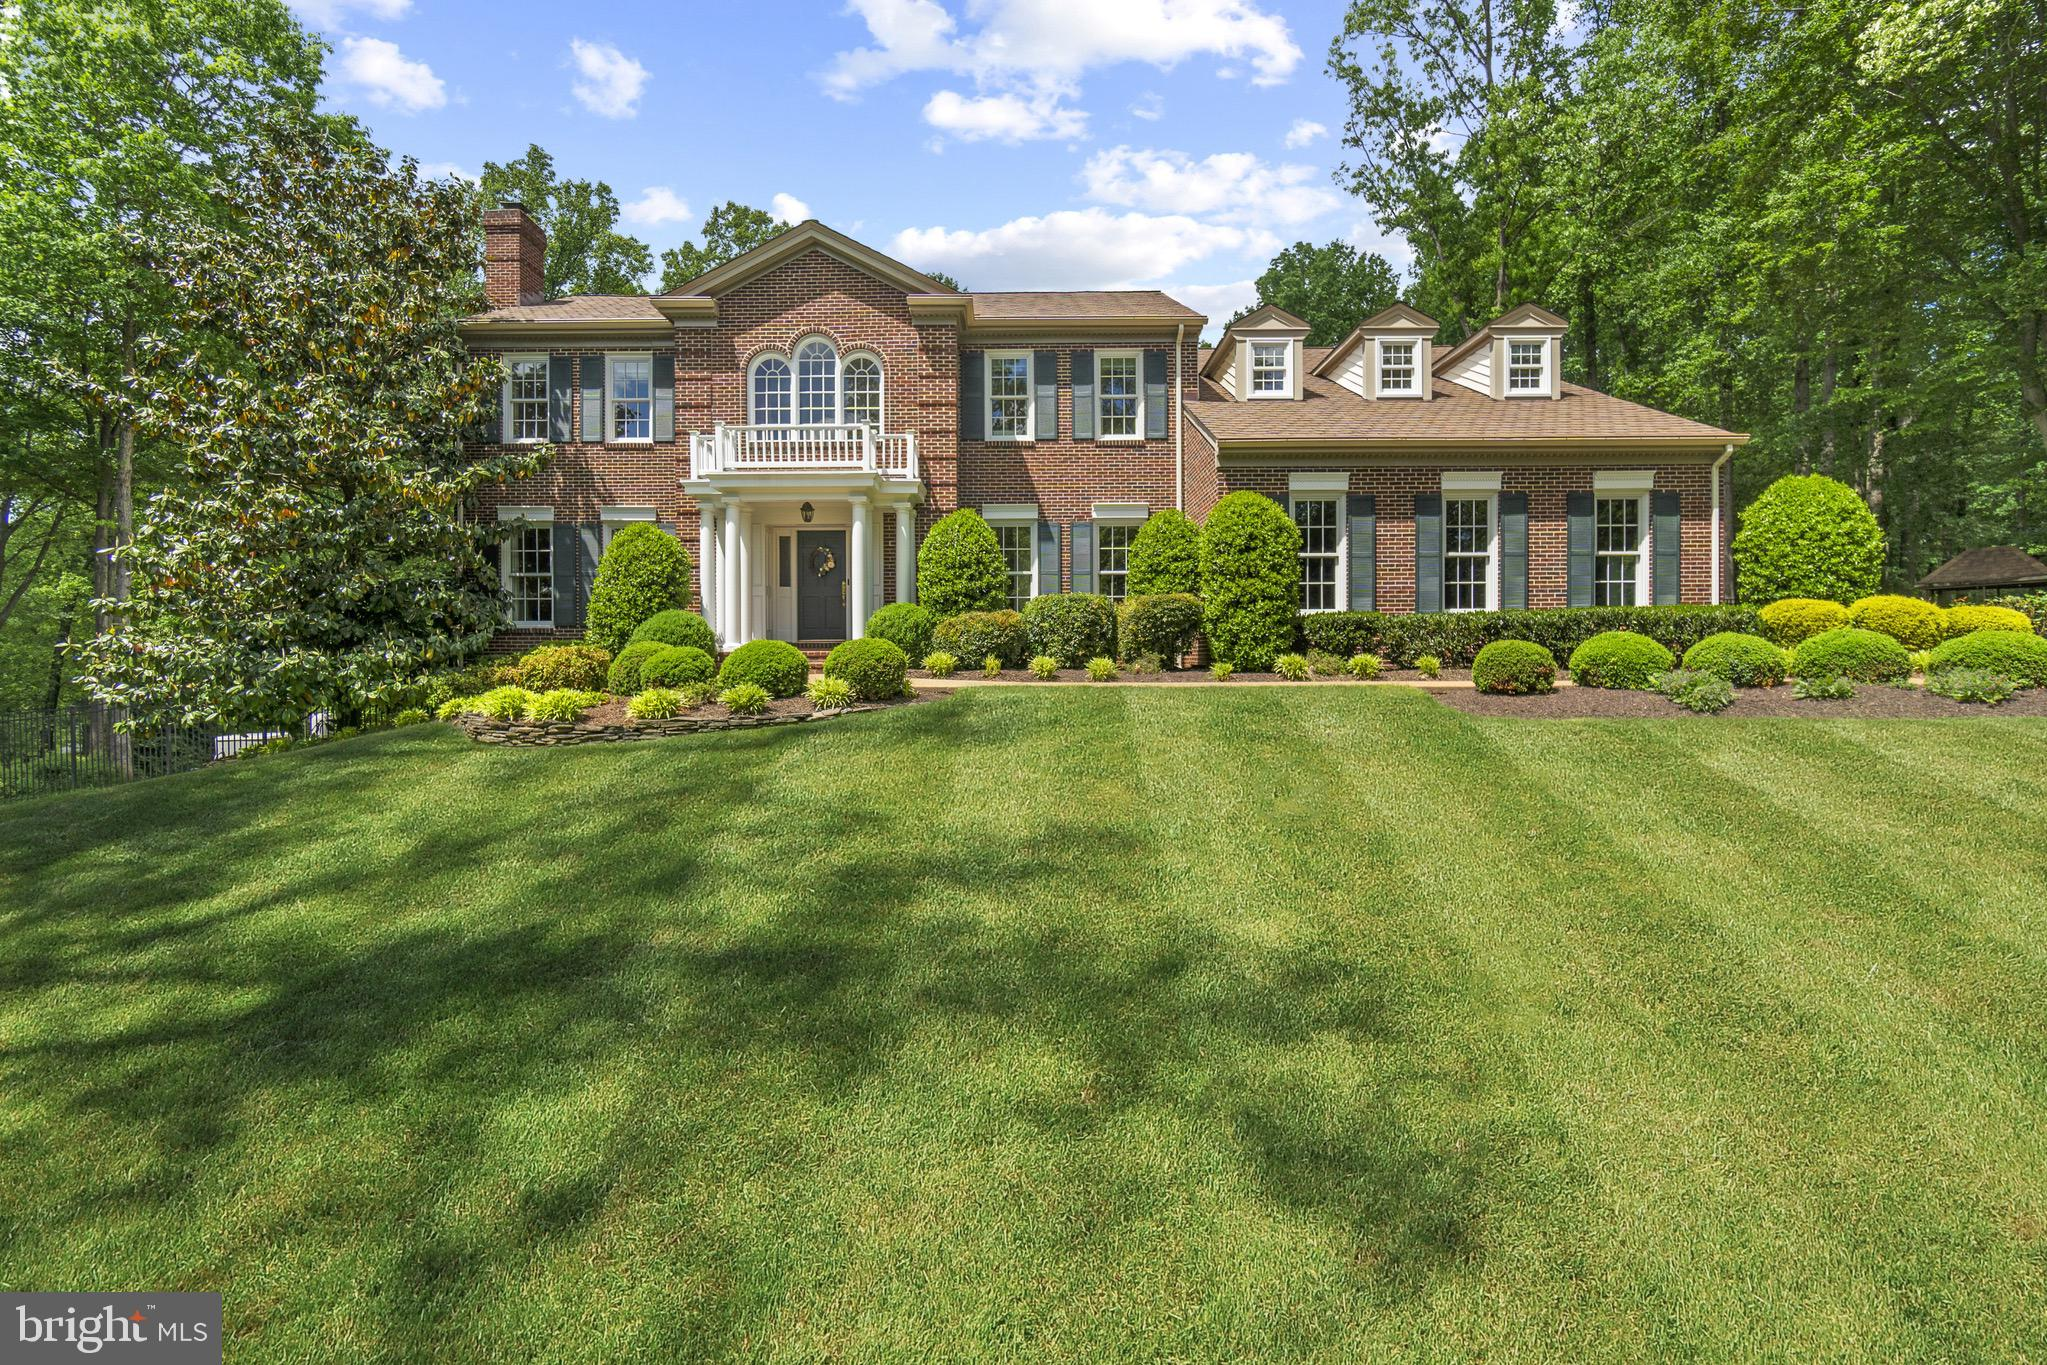 Stunning Colonial style custom home with recent updates, located on a 2 acre secluded lot off of Hen